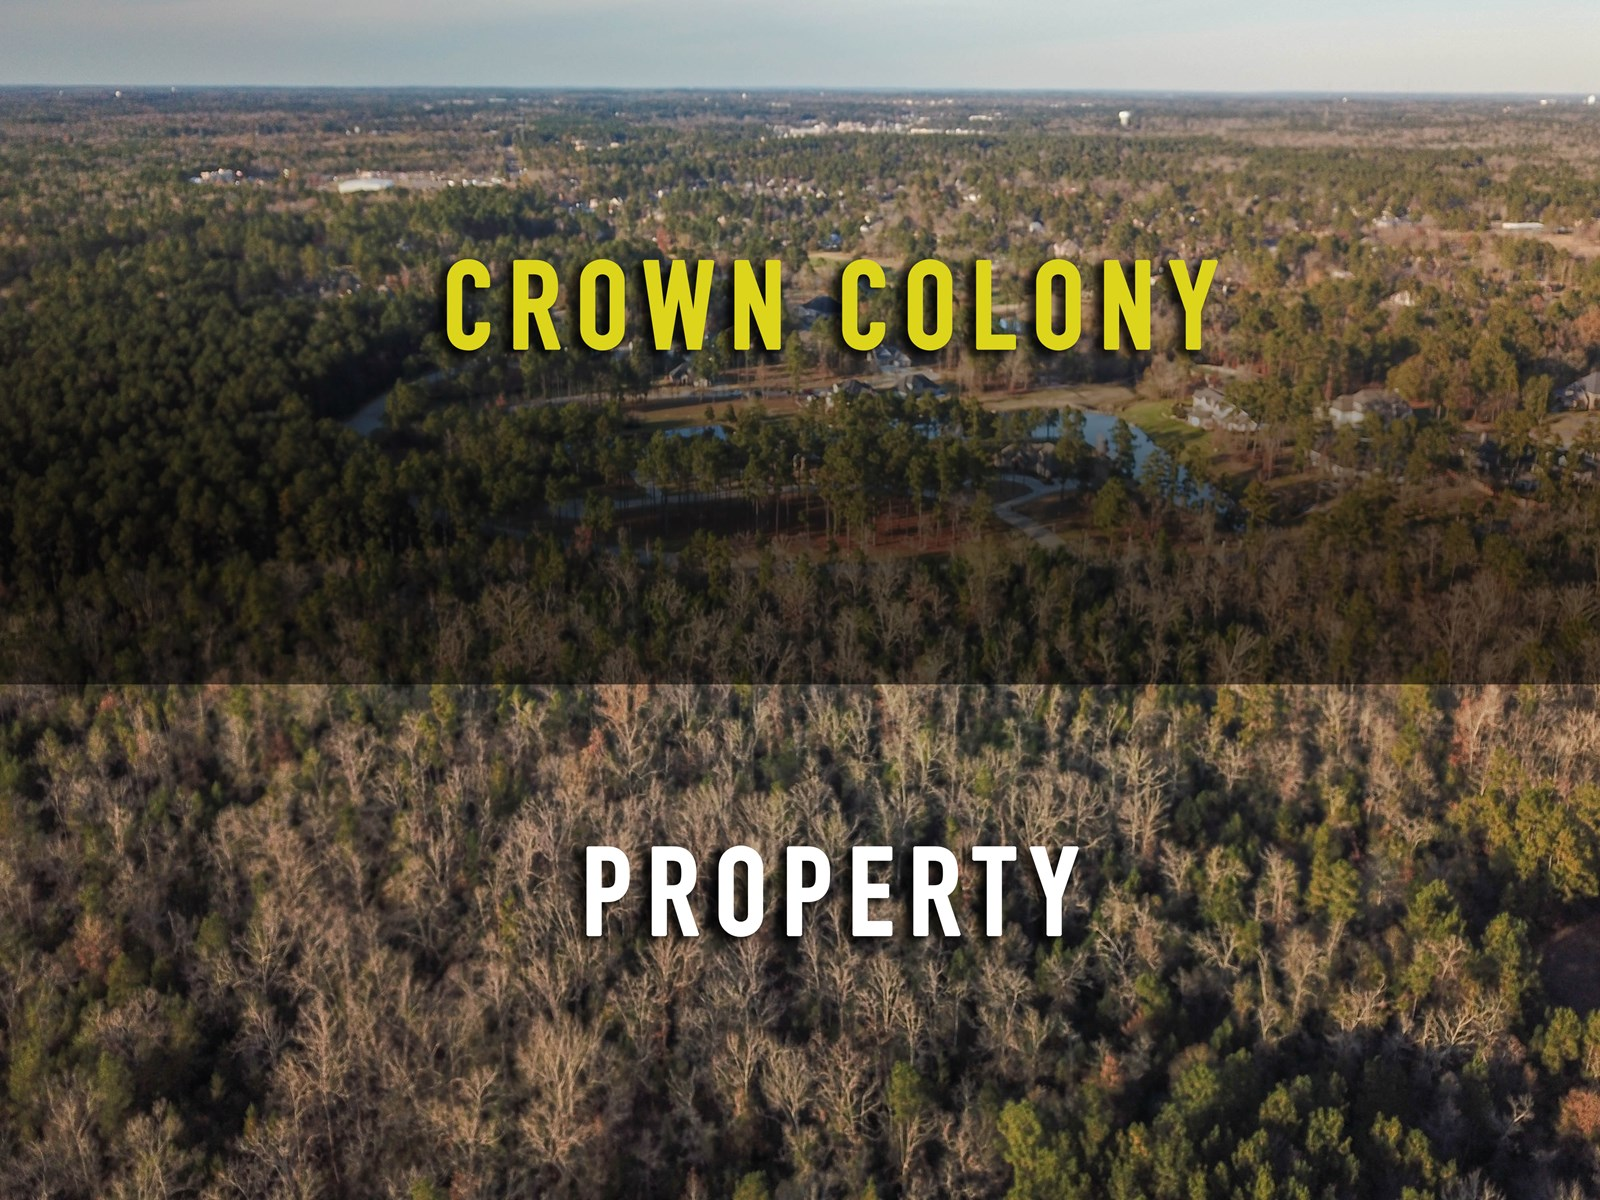 210 ACRES DEVELOPEMENT LAND BESIDE CROWN COLONY IN LUFKIN